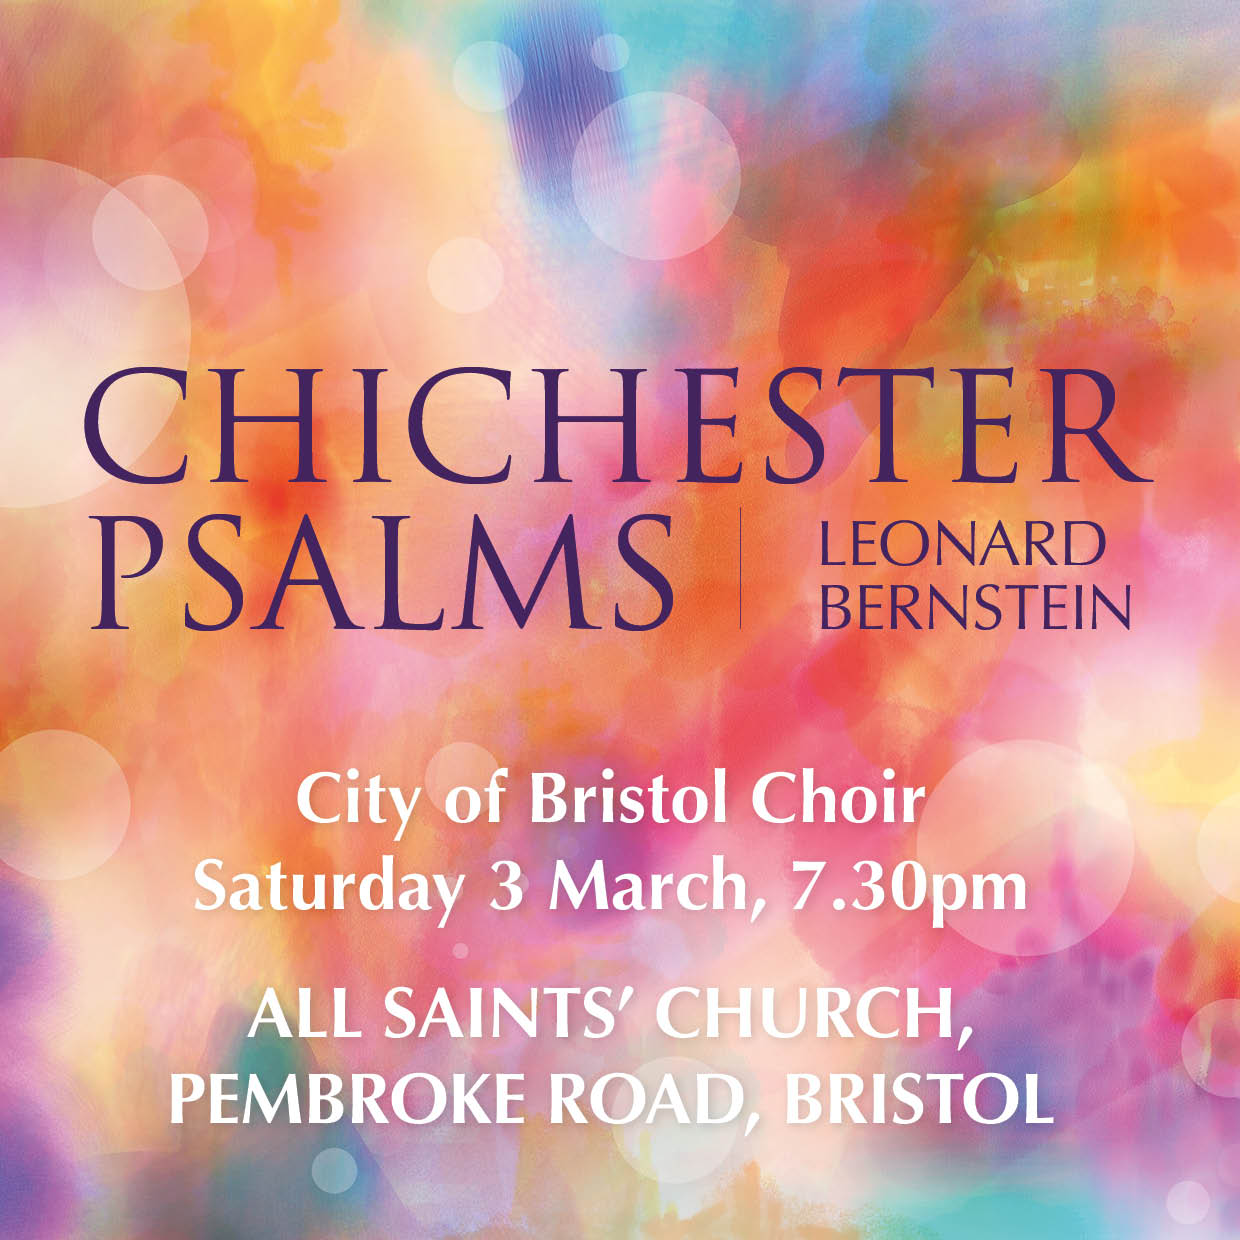 Chichester Psalms